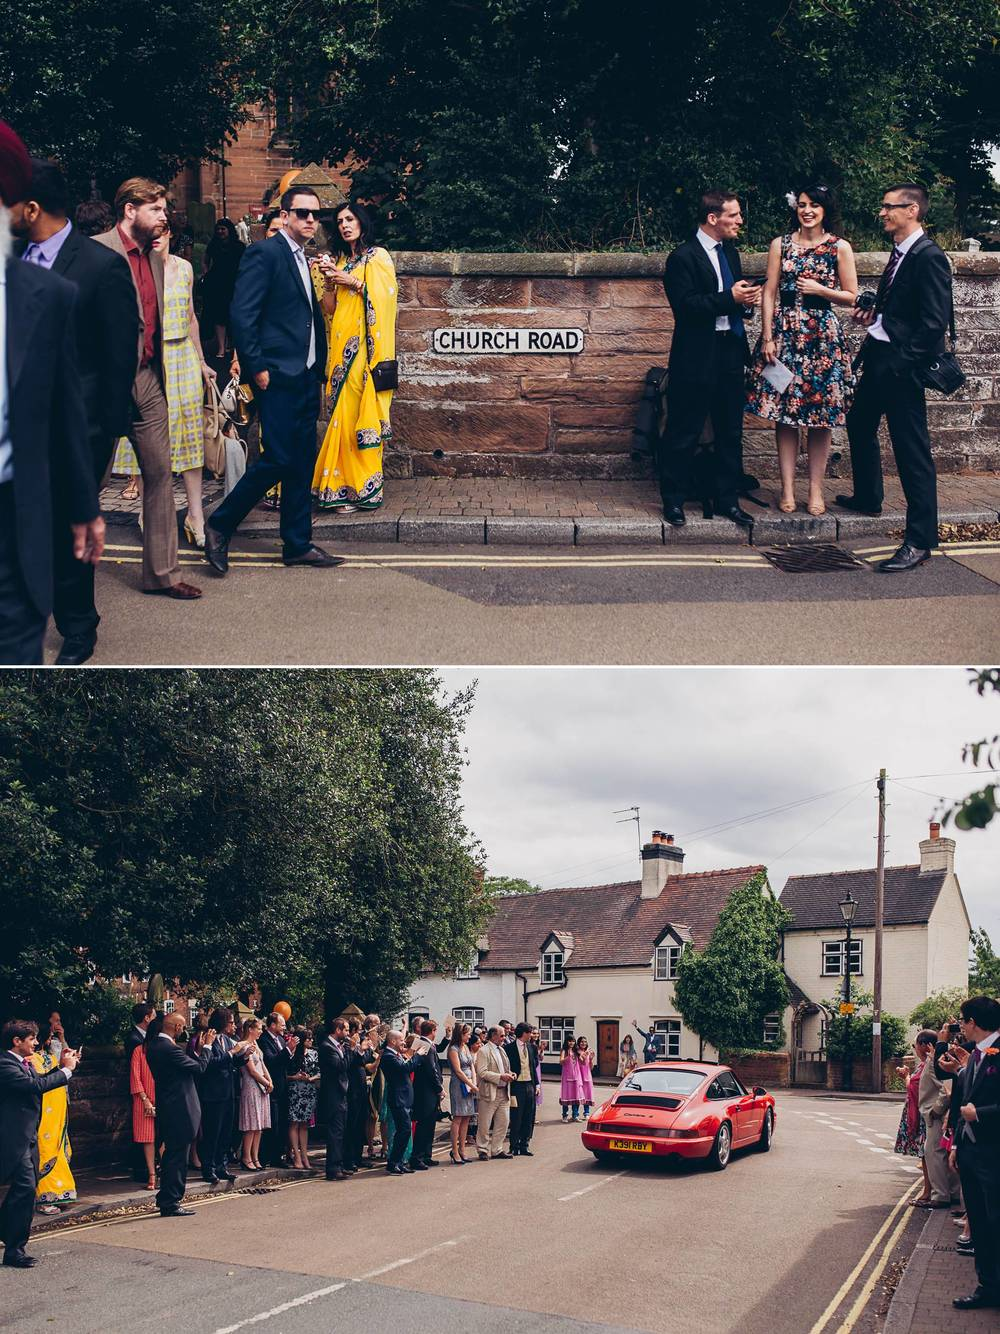 wedding-photographer-staffordshire 18.jpg